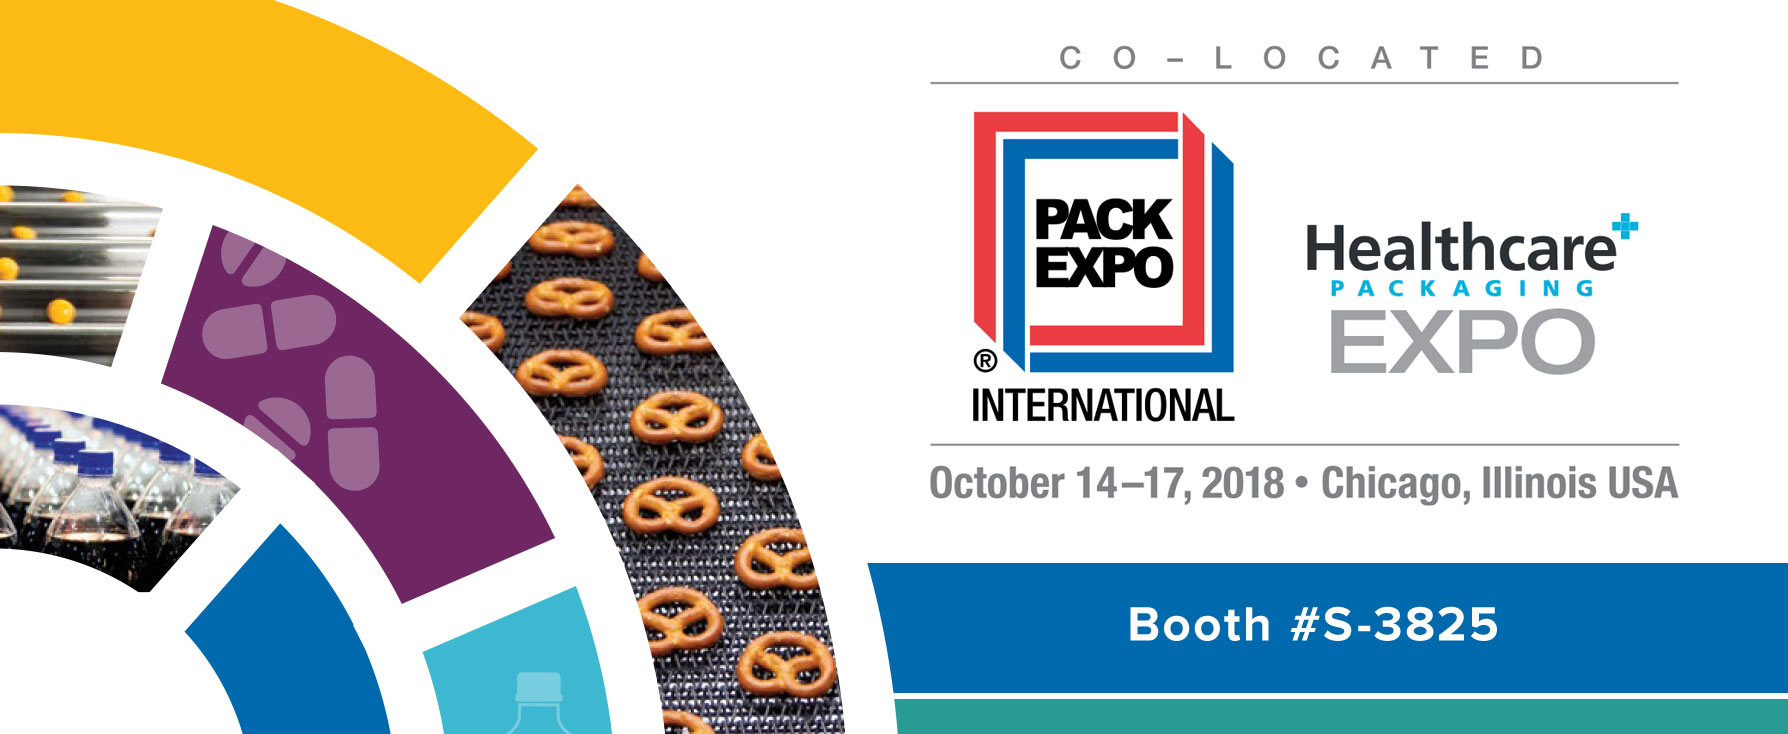 Pack Expo International - Healthcare Packaging Expo